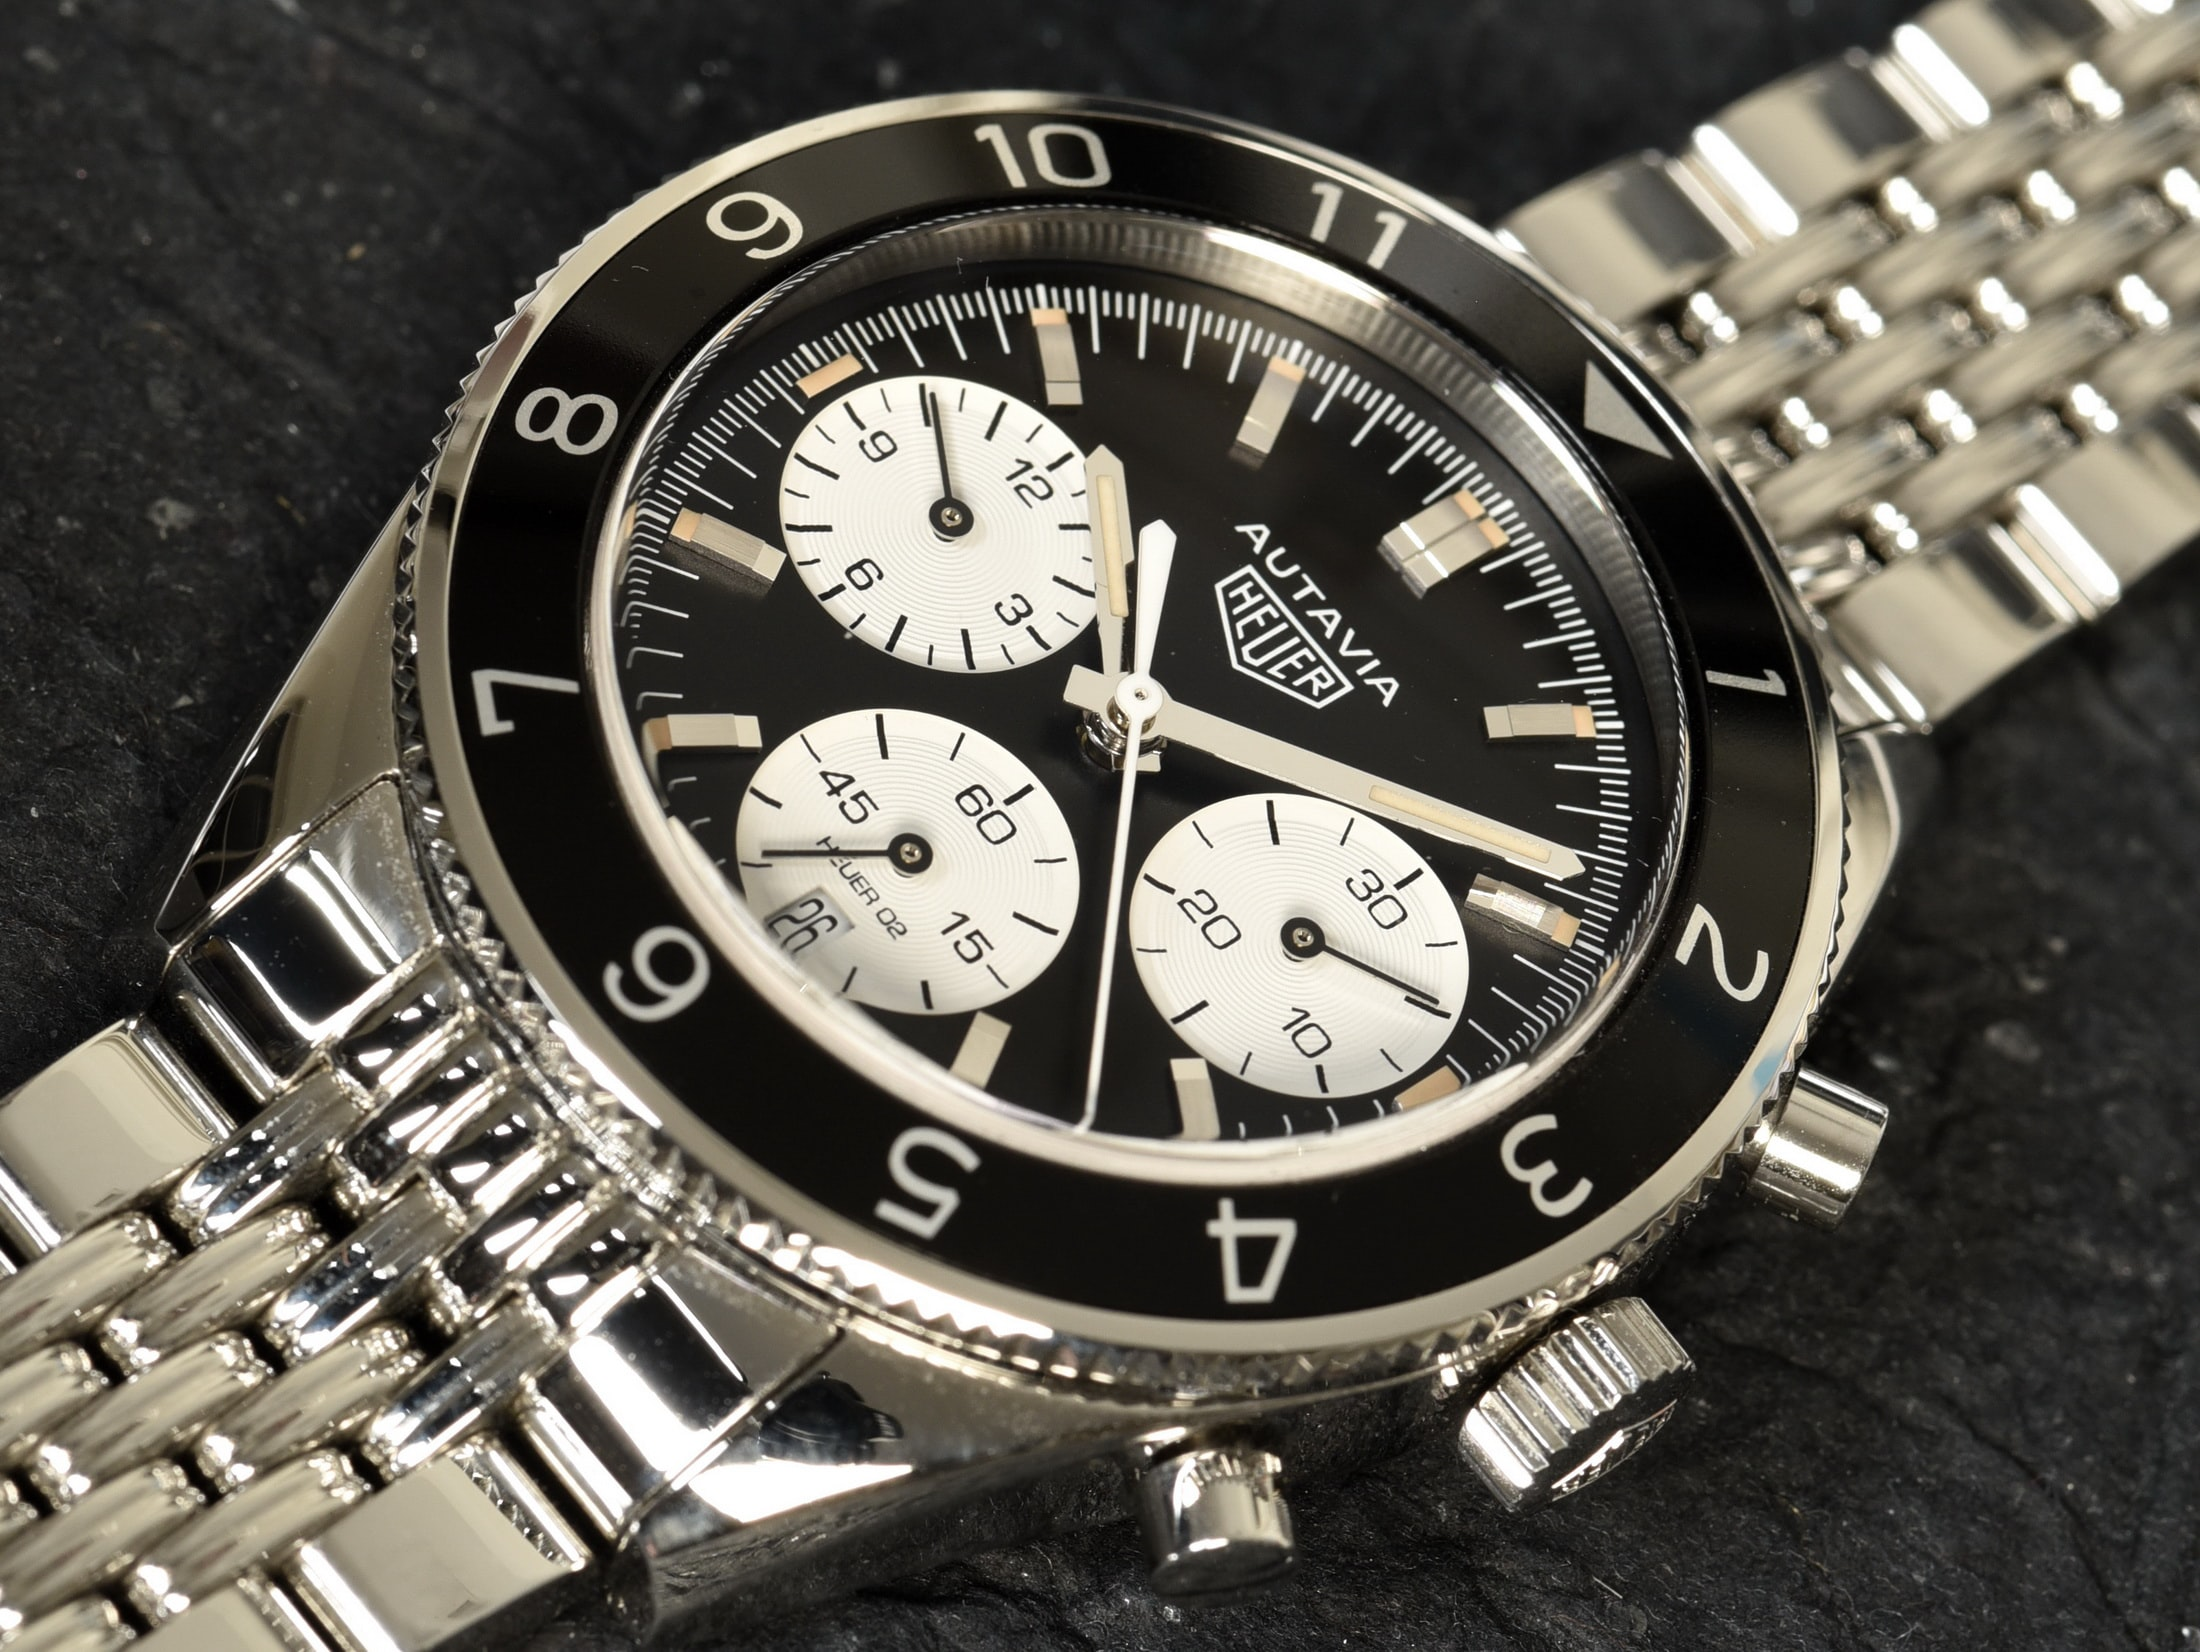 tag heuer 2017 autavia dial detail Interview: Heuer Expert Jeff Stein's Take On The 2017 TAG Heuer Autavia Interview: Heuer Expert Jeff Stein's Take On The 2017 TAG Heuer Autavia 05Aut2017w2200h1652